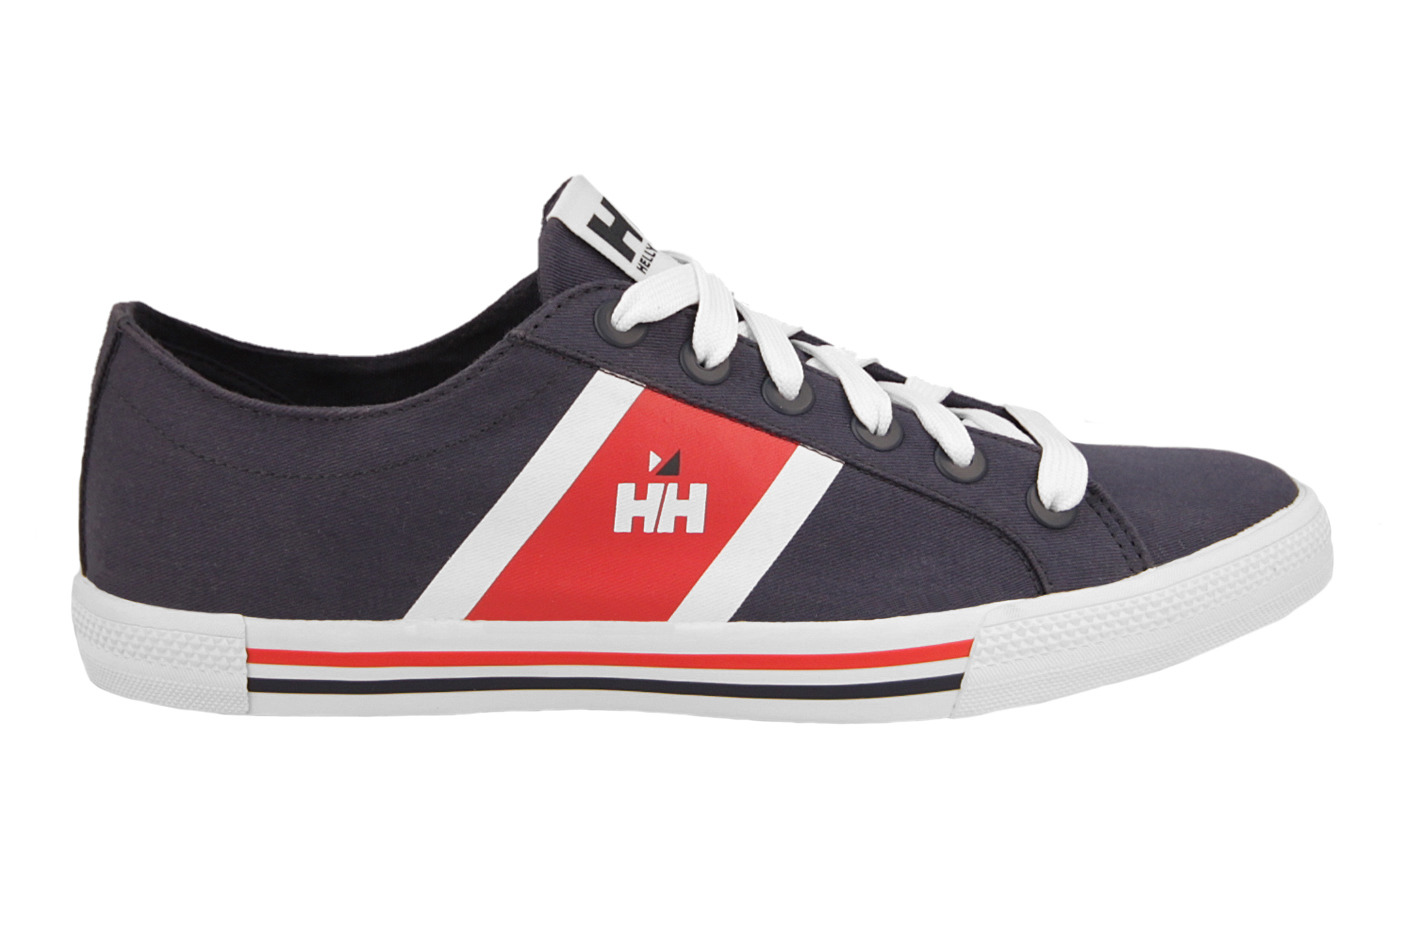 http://yessport.pl/pol_pl_BUTY-HELLY-HANSEN-BERGE-VIKING-LOW-10764-597-7603_1.jpg